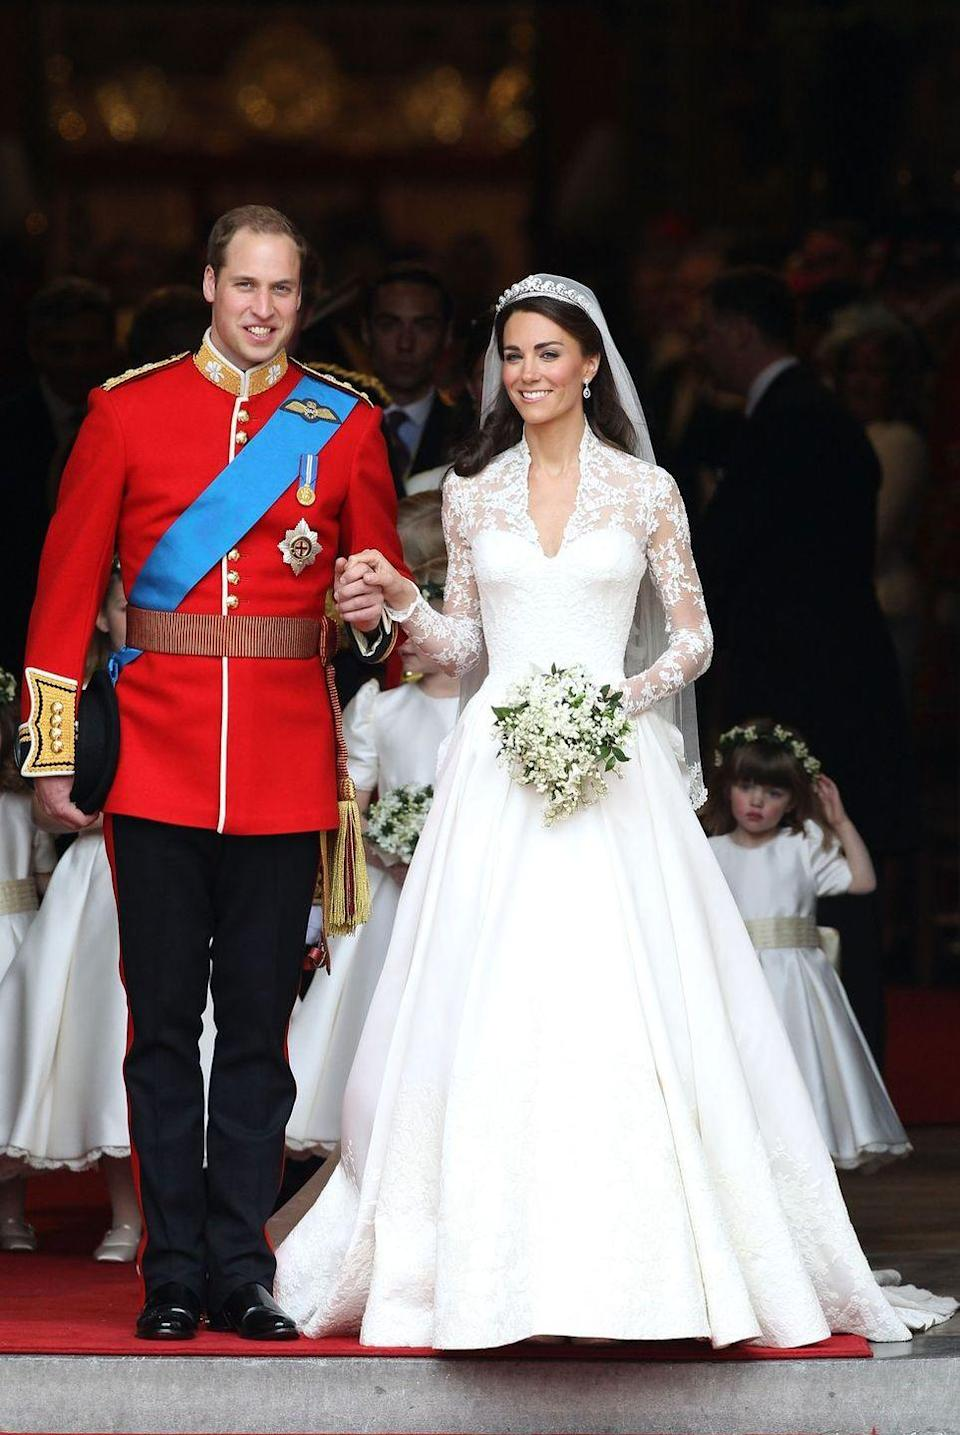 "<p><a href=""https://www.townandcountrymag.com/society/tradition/a13989870/meghan-markle-bridesmaid-kate-middleton/"" rel=""nofollow noopener"" target=""_blank"" data-ylk=""slk:Kate Middleton"" class=""link rapid-noclick-resp"">Kate Middleton</a> and Prince William held their wedding at Westminster Abbey on August 29, 2011. <a href=""https://www.townandcountrymag.com/the-scene/weddings/a20517182/kate-middleton-wedding-dress/"" rel=""nofollow noopener"" target=""_blank"" data-ylk=""slk:Duchess Kate's iconic dress, designed"" class=""link rapid-noclick-resp"">Duchess Kate's iconic dress, designed</a> by Sarah Burton for Alexander McQueen, featured Victorian-inspired corsetry, long sleeves, and a delicate lace flower collar.</p>"